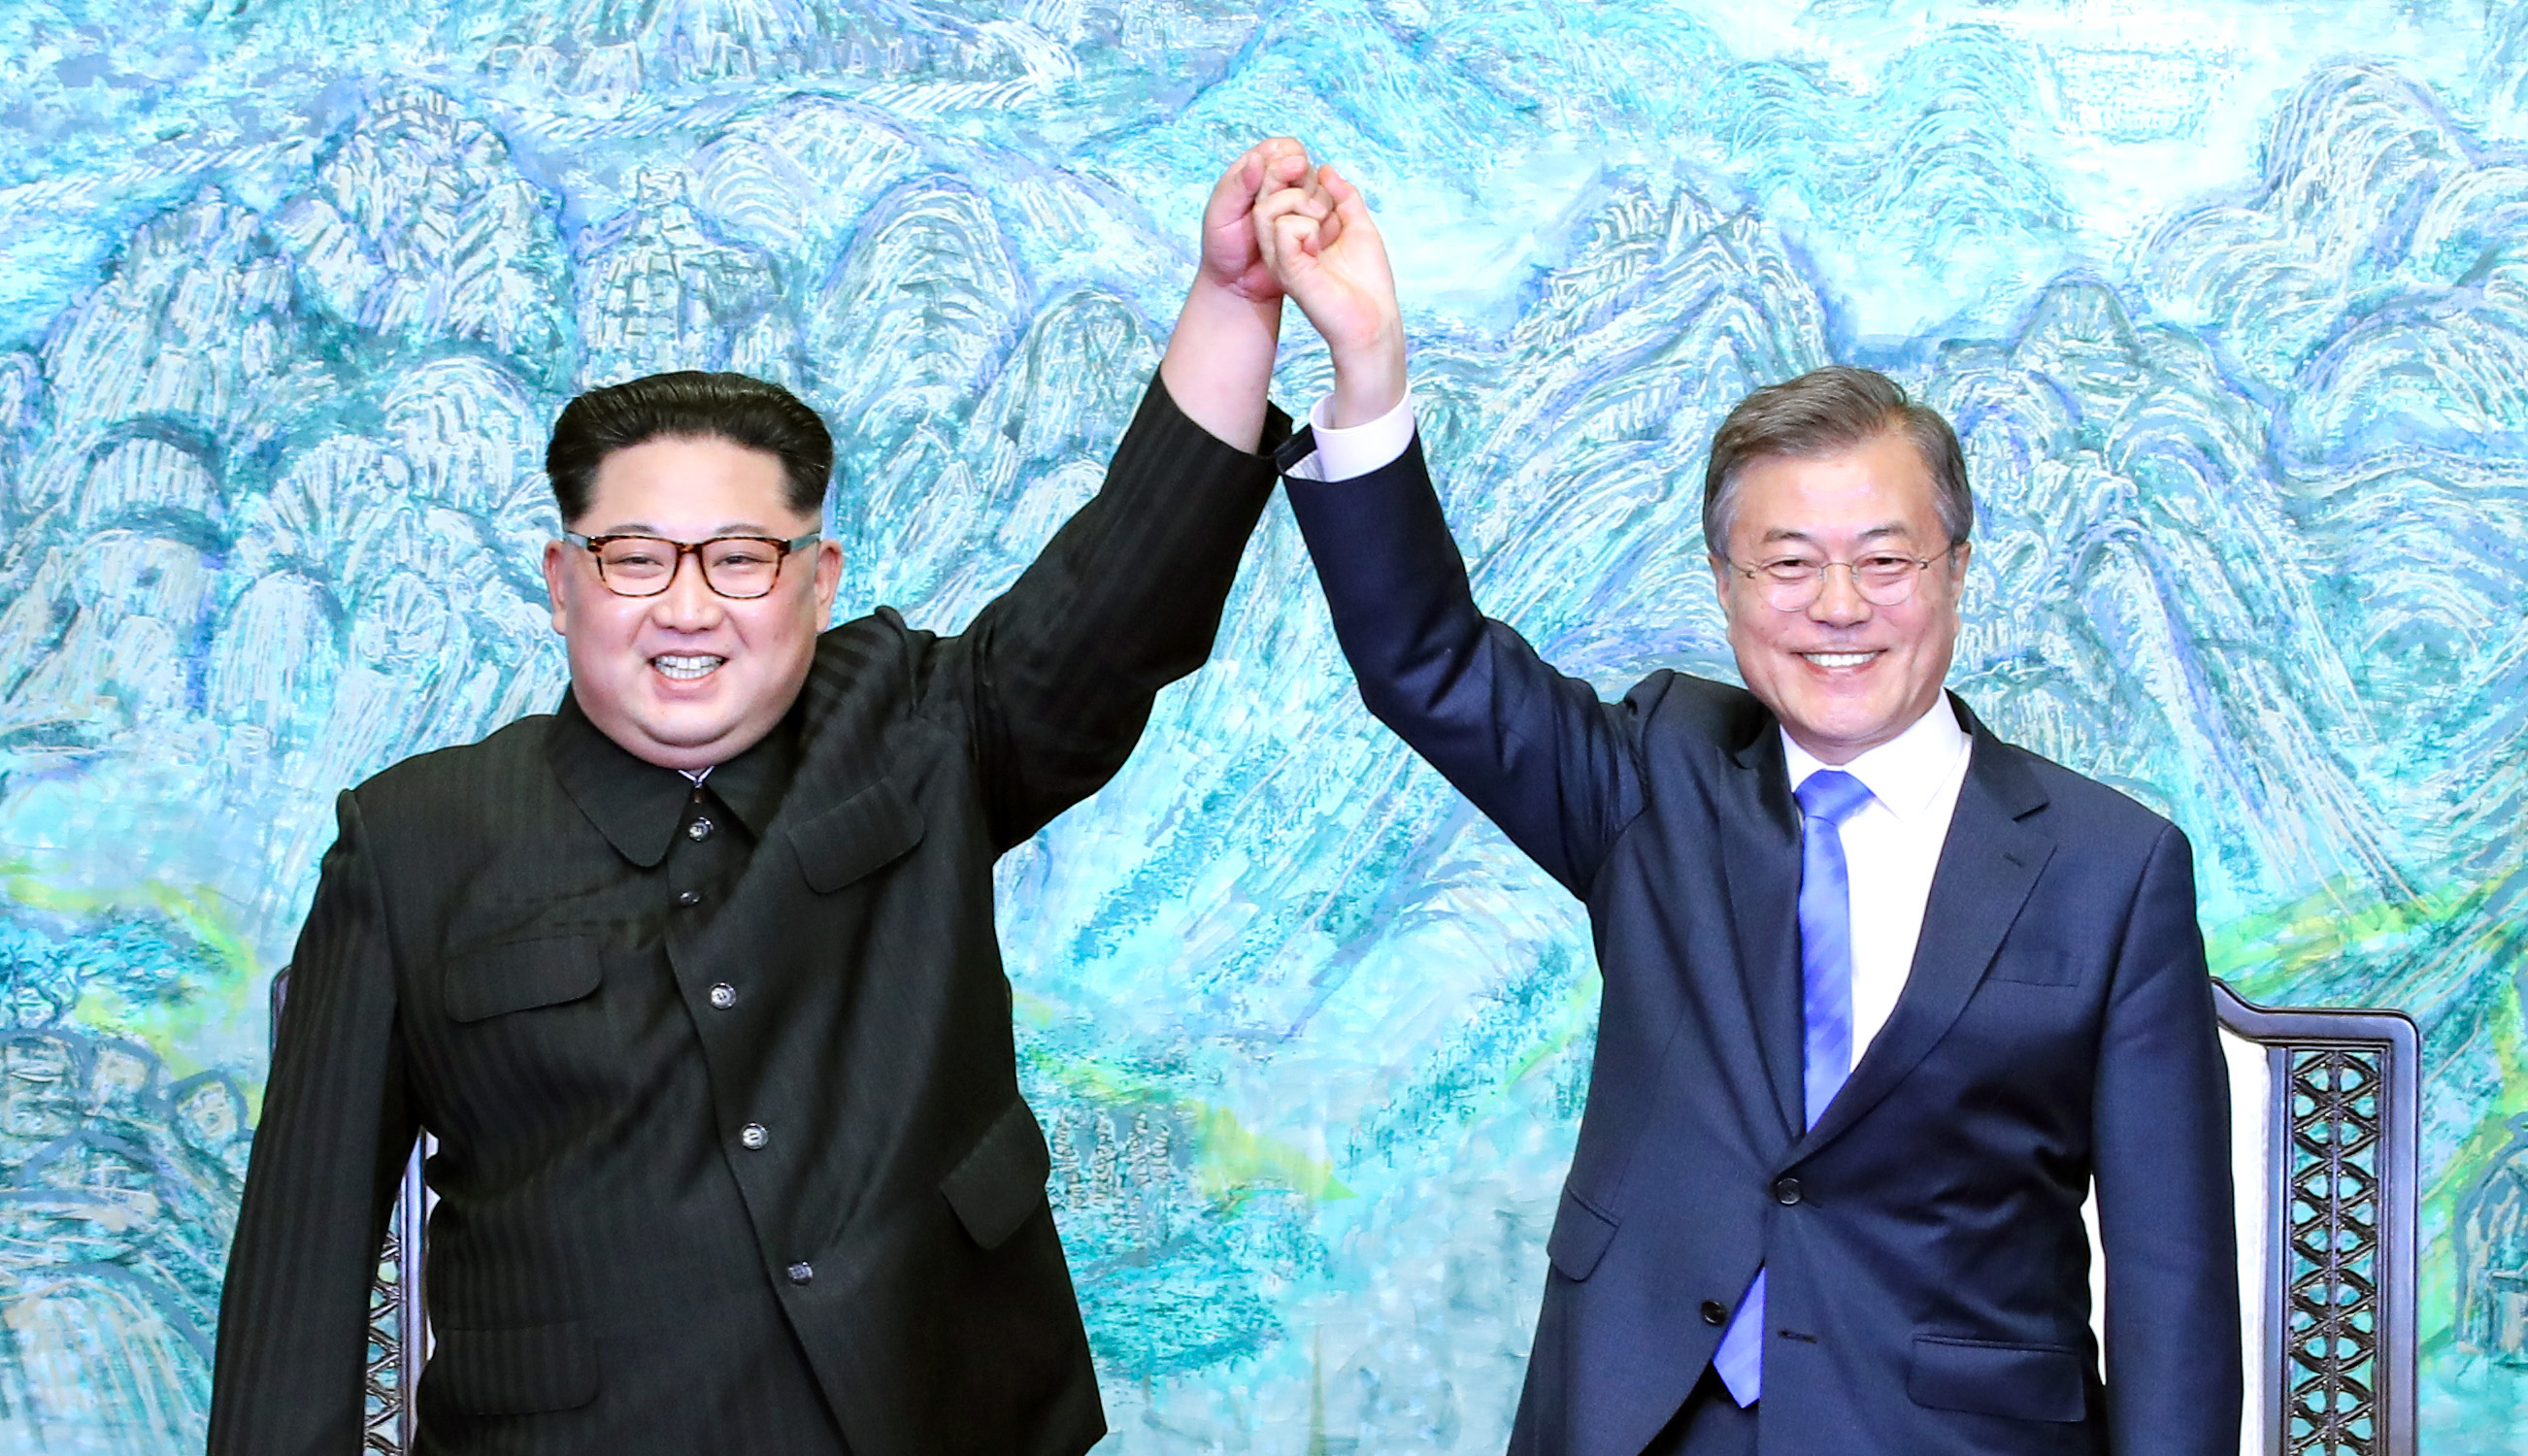 North Korean leader Kim Jong Un and South Korean President Moon Jae-in during the Inter-Korean Summit at the Peace House on April 27, 2018 in Panmunjom, South Korea.